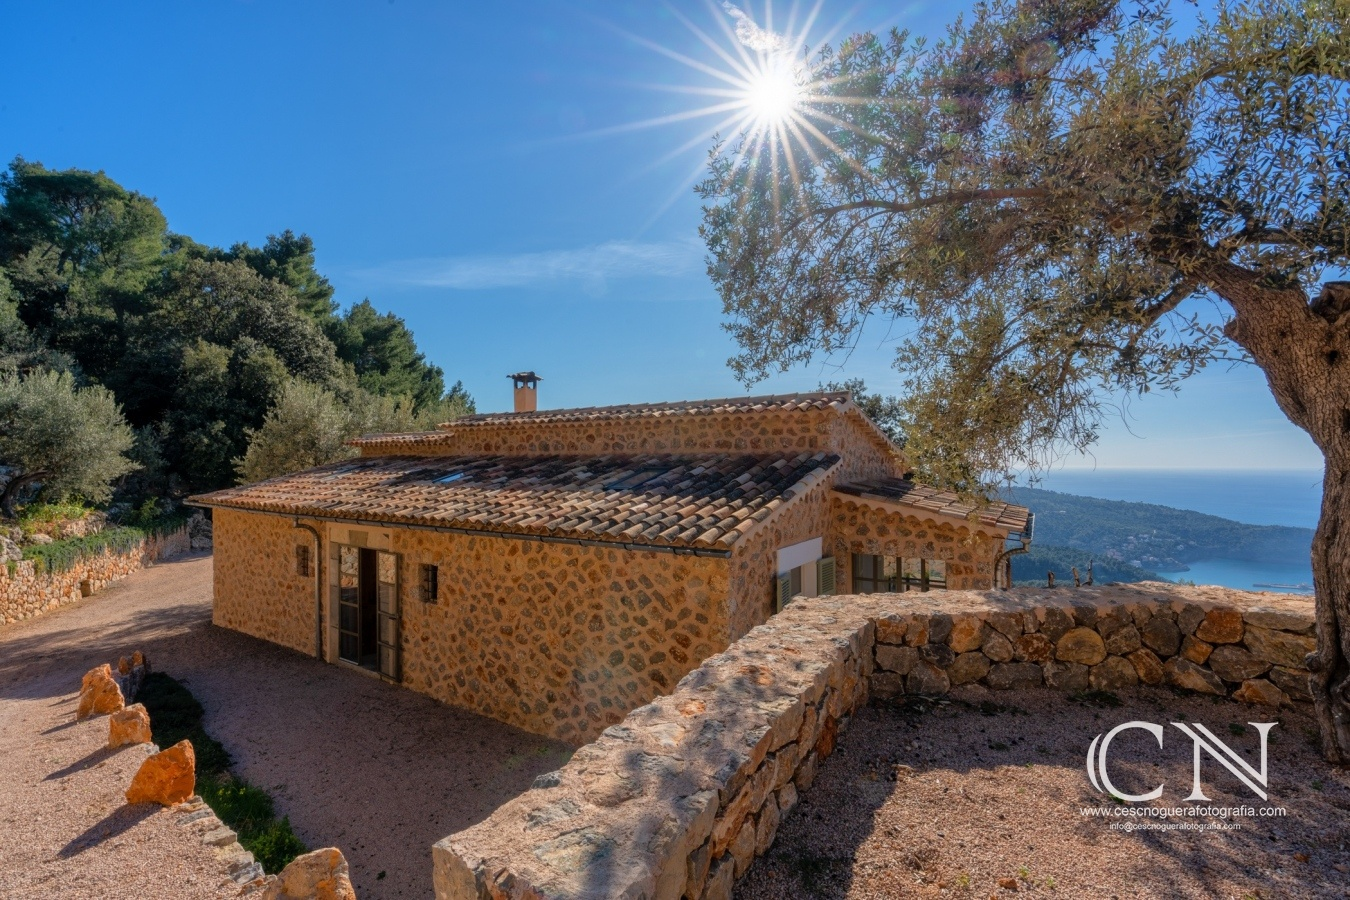 Casa Rustica a Sóller - Cesc Noguera Photography, When photography is a passion, Architectural & Interior design photographer / Landscape Photography